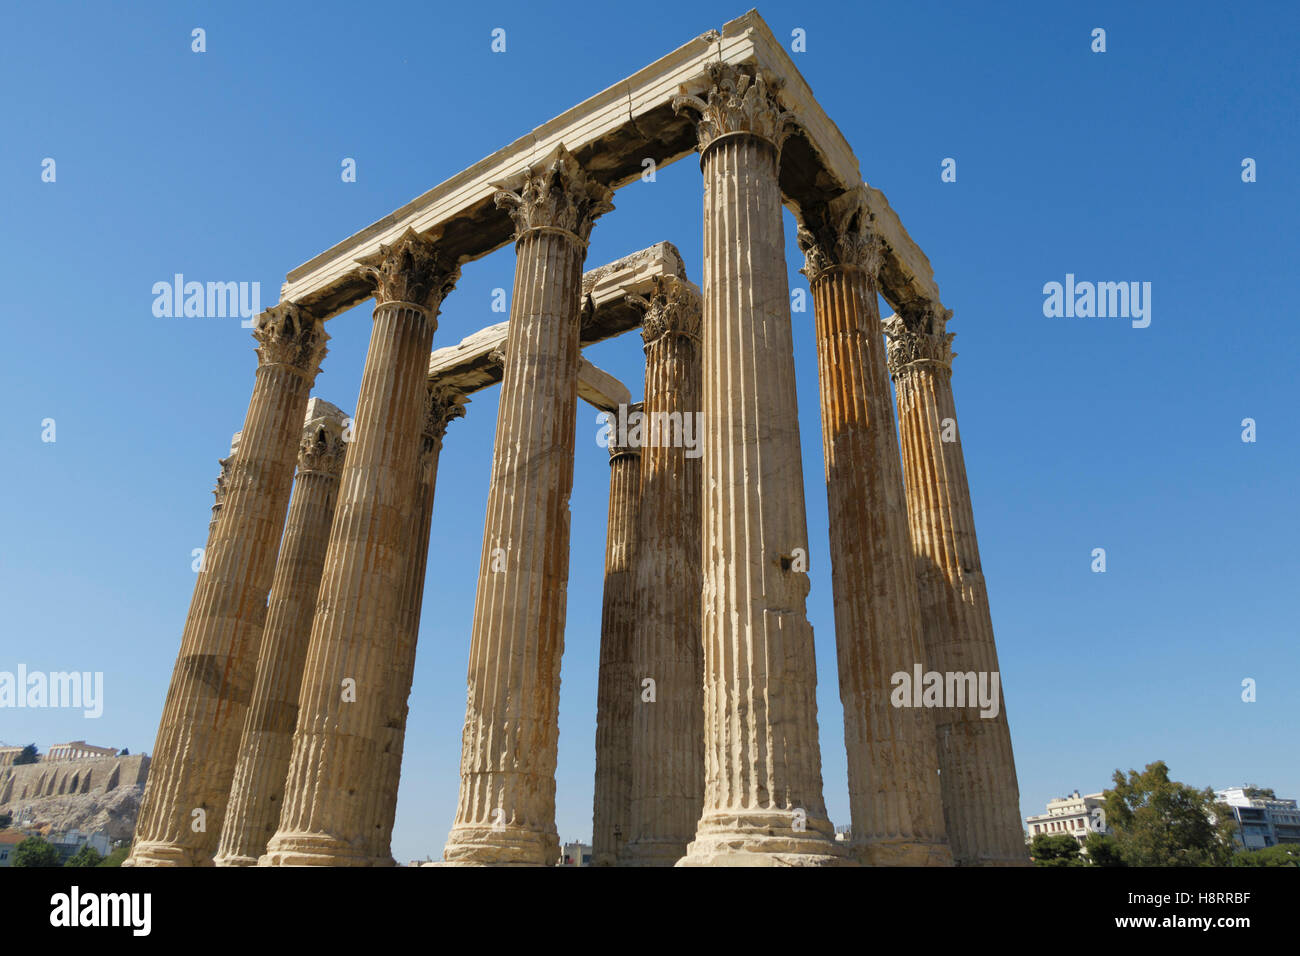 Temple of Olympian Zeus, Athens, Greece - Stock Image